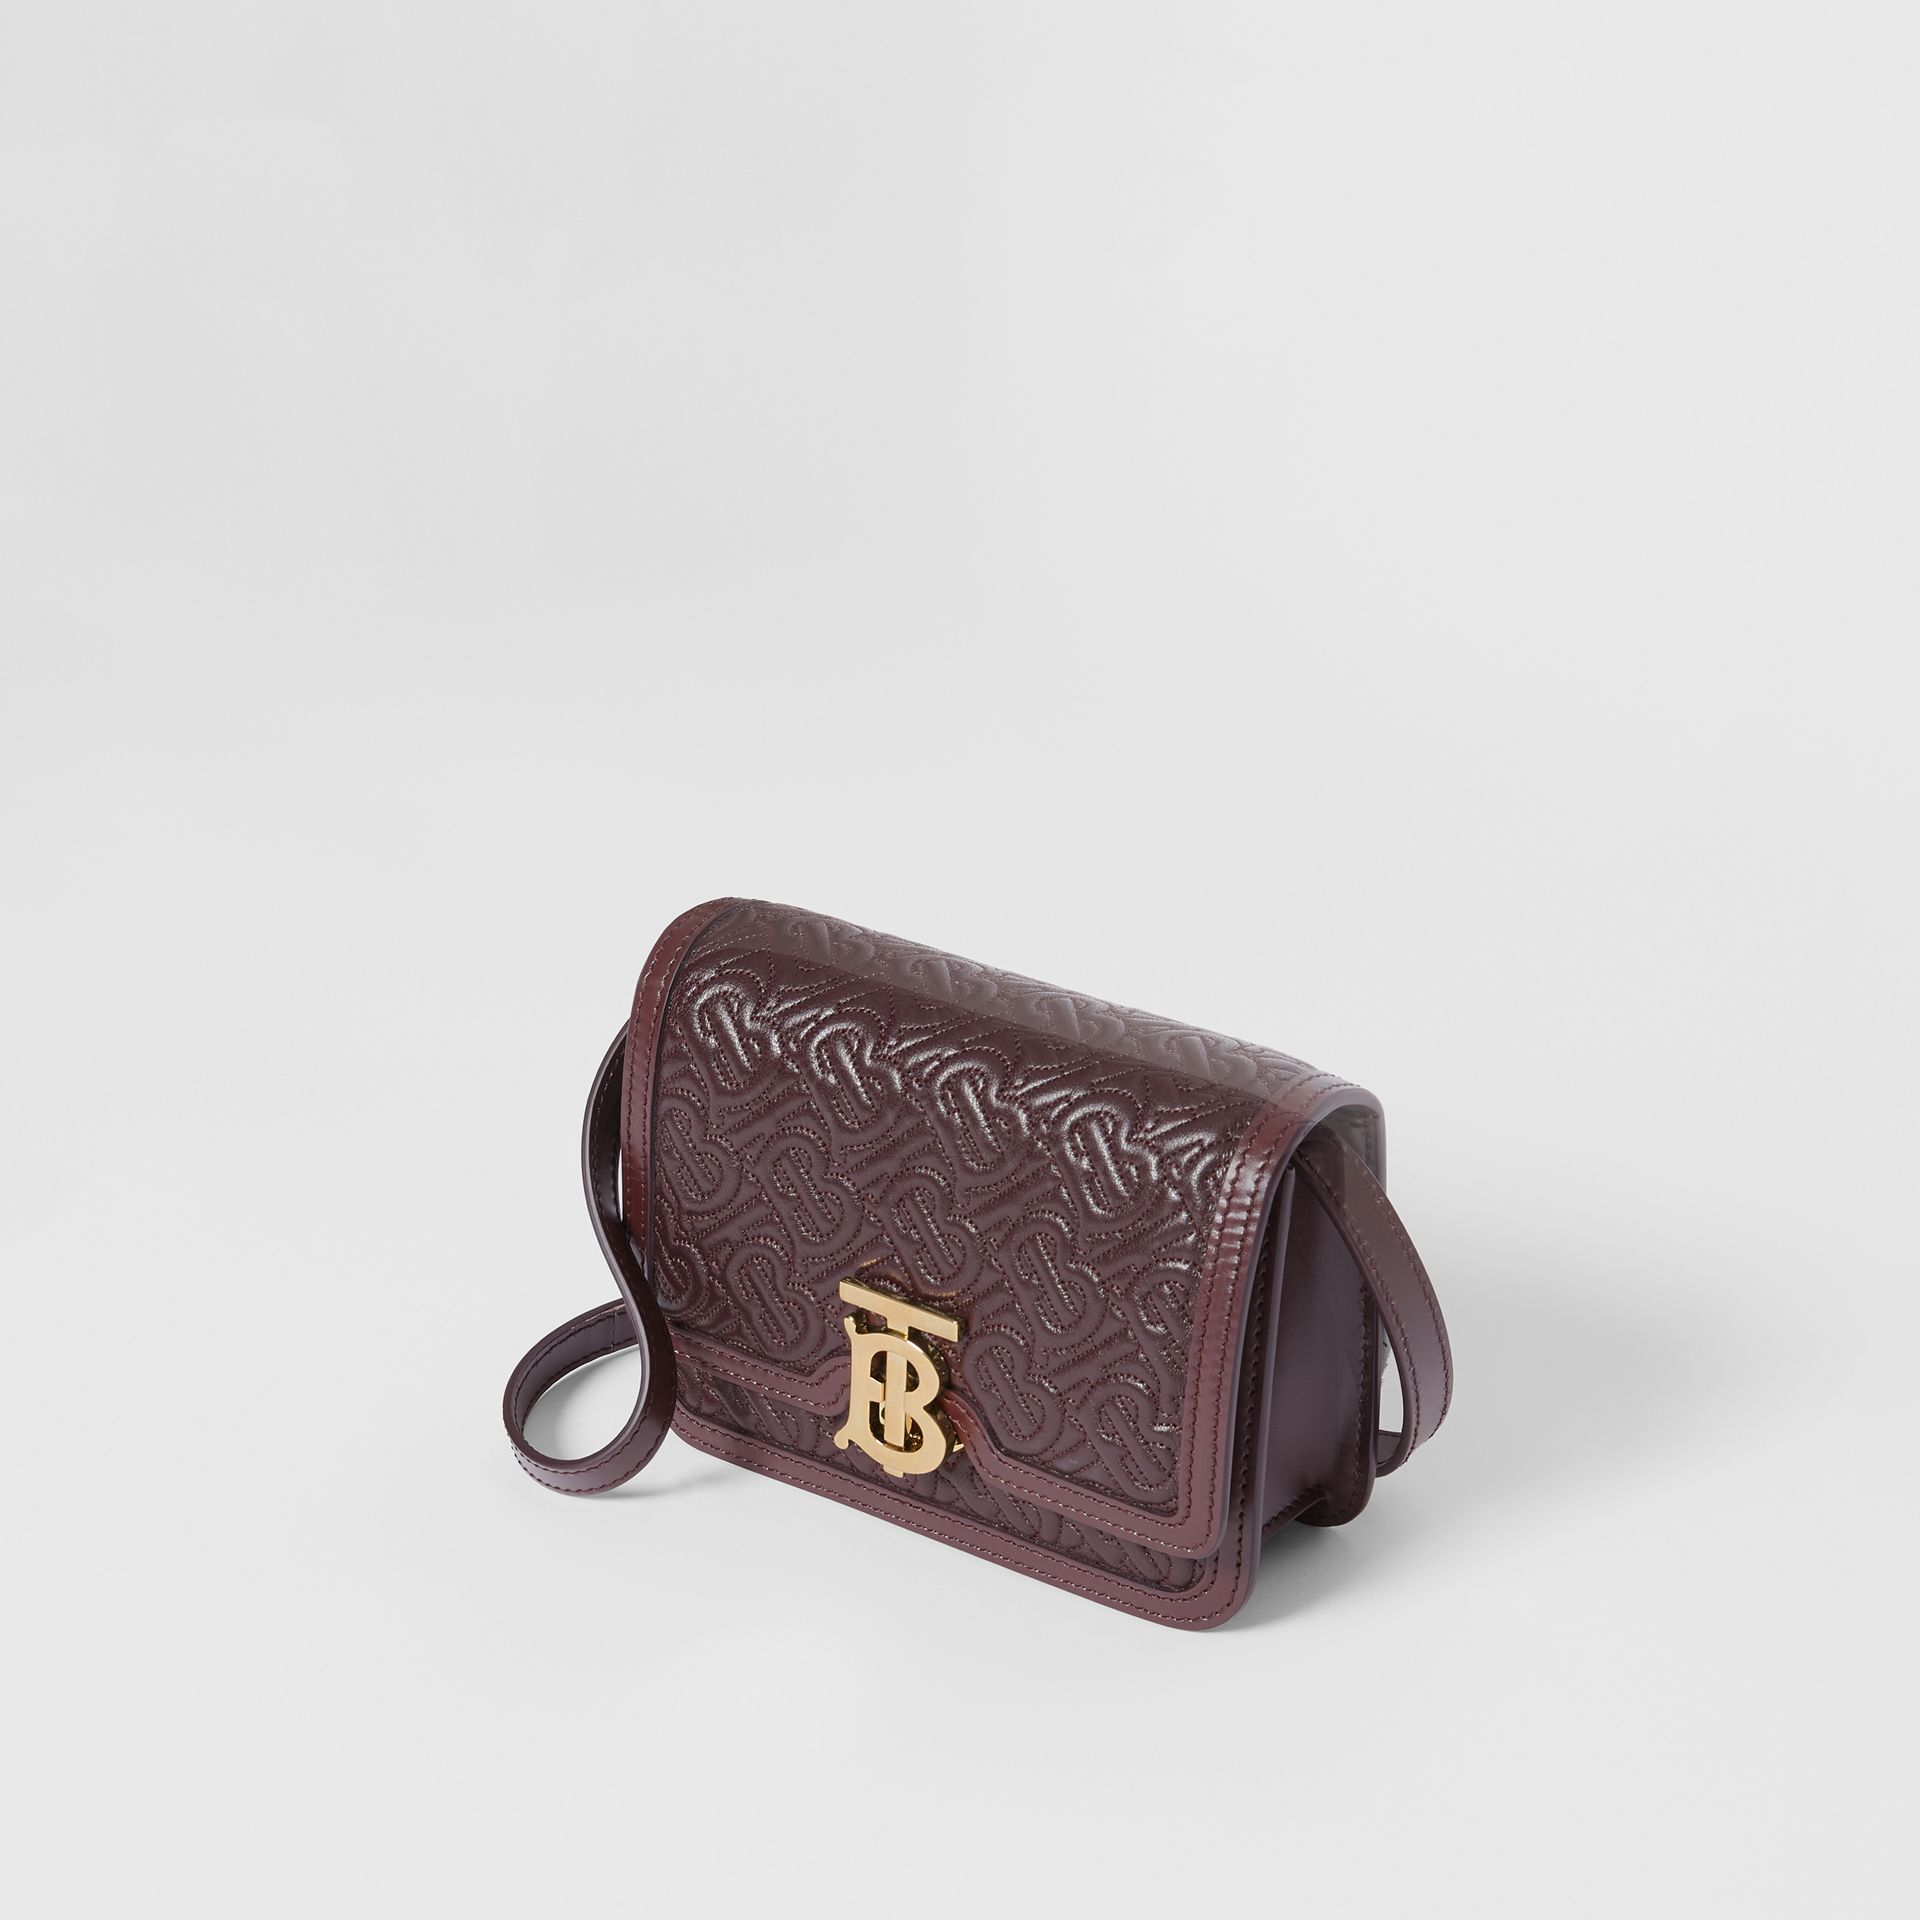 Mini Quilted Monogram Lambskin TB Bag in Dark Burgundy - Women | Burberry Hong Kong S.A.R - gallery image 3